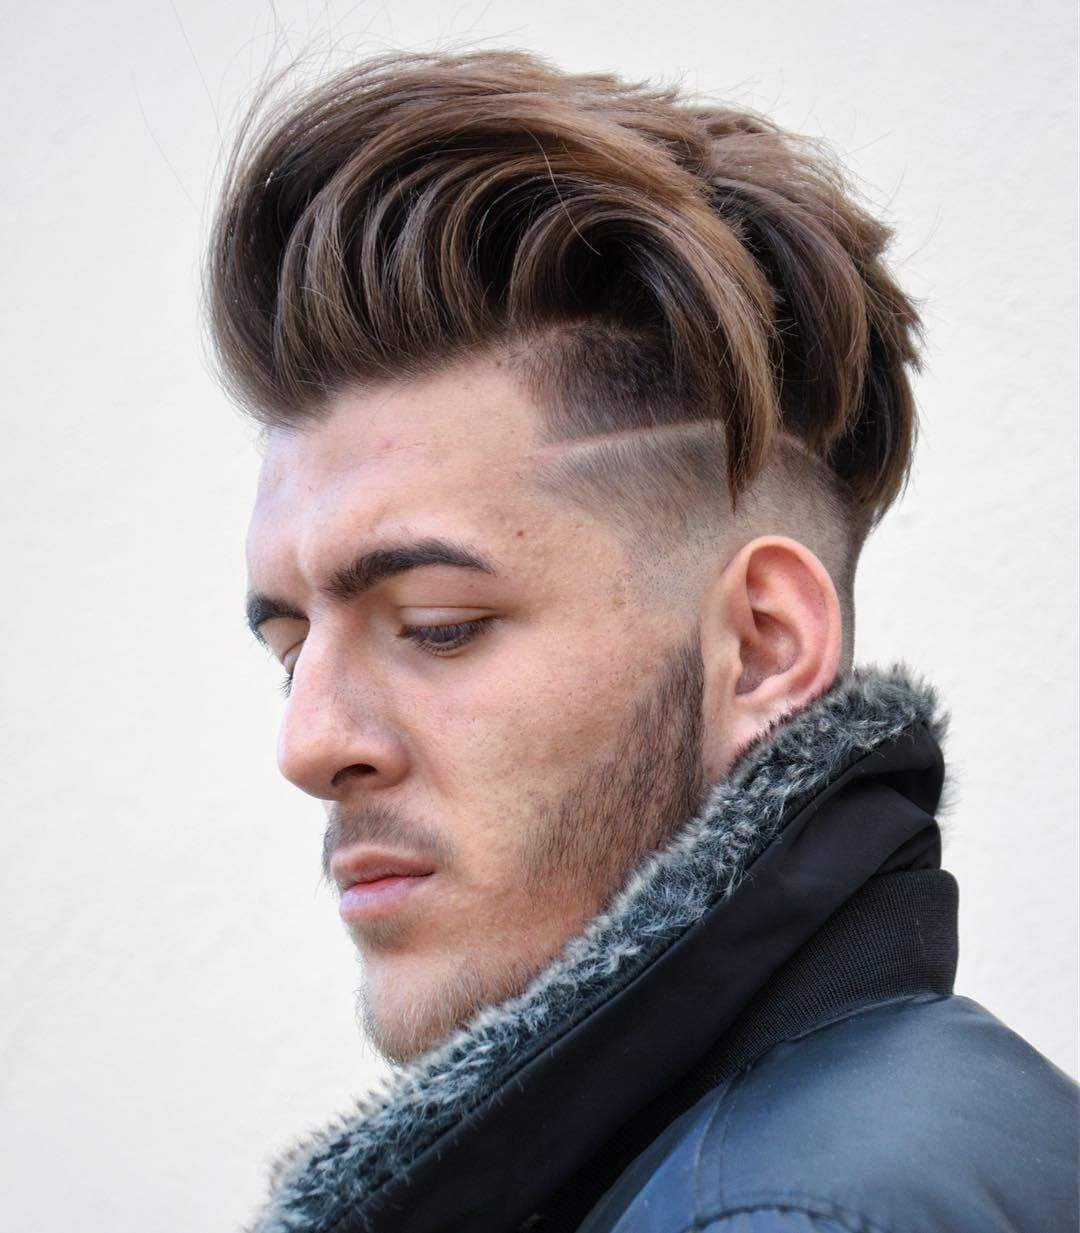 2018 haircuts for men  cool menus hairstyles you can try in   fdgdsfgfdg